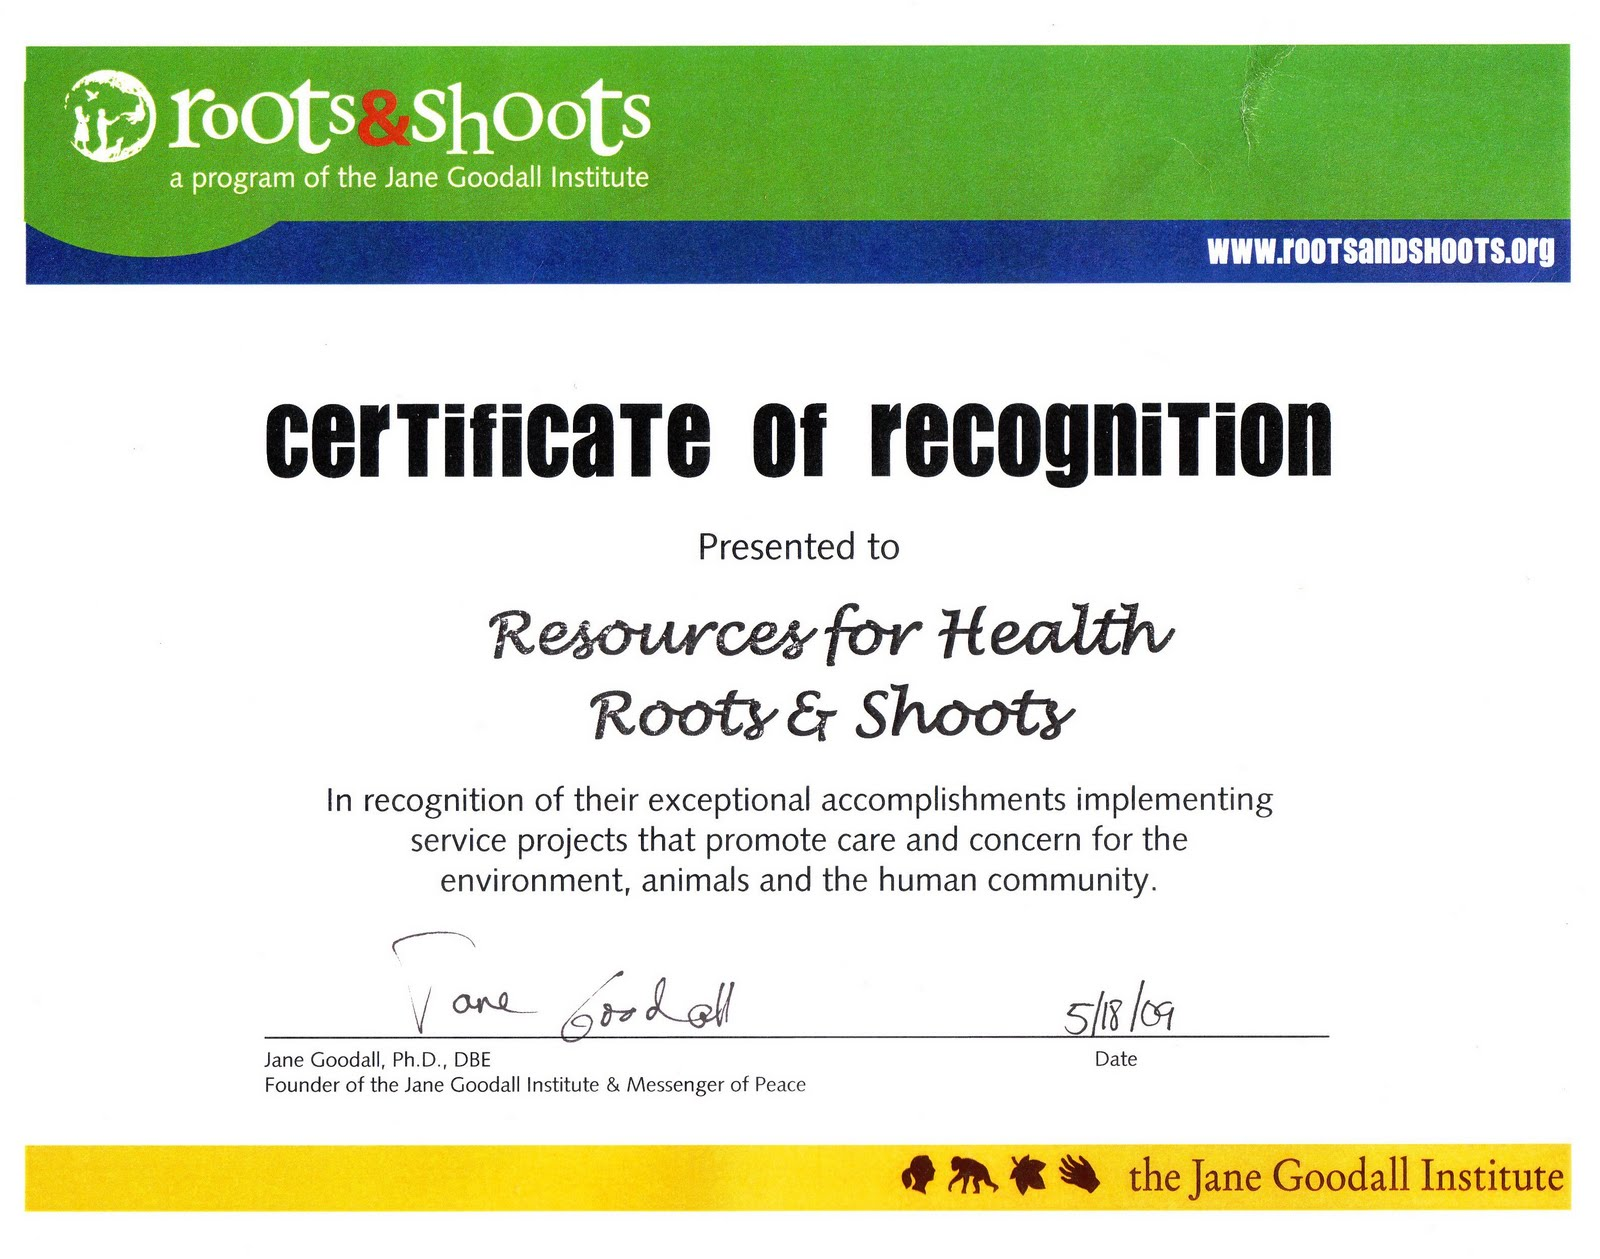 Resources for Health Awards ROOTS SHOOTS EXCEPTIONAL GROUP